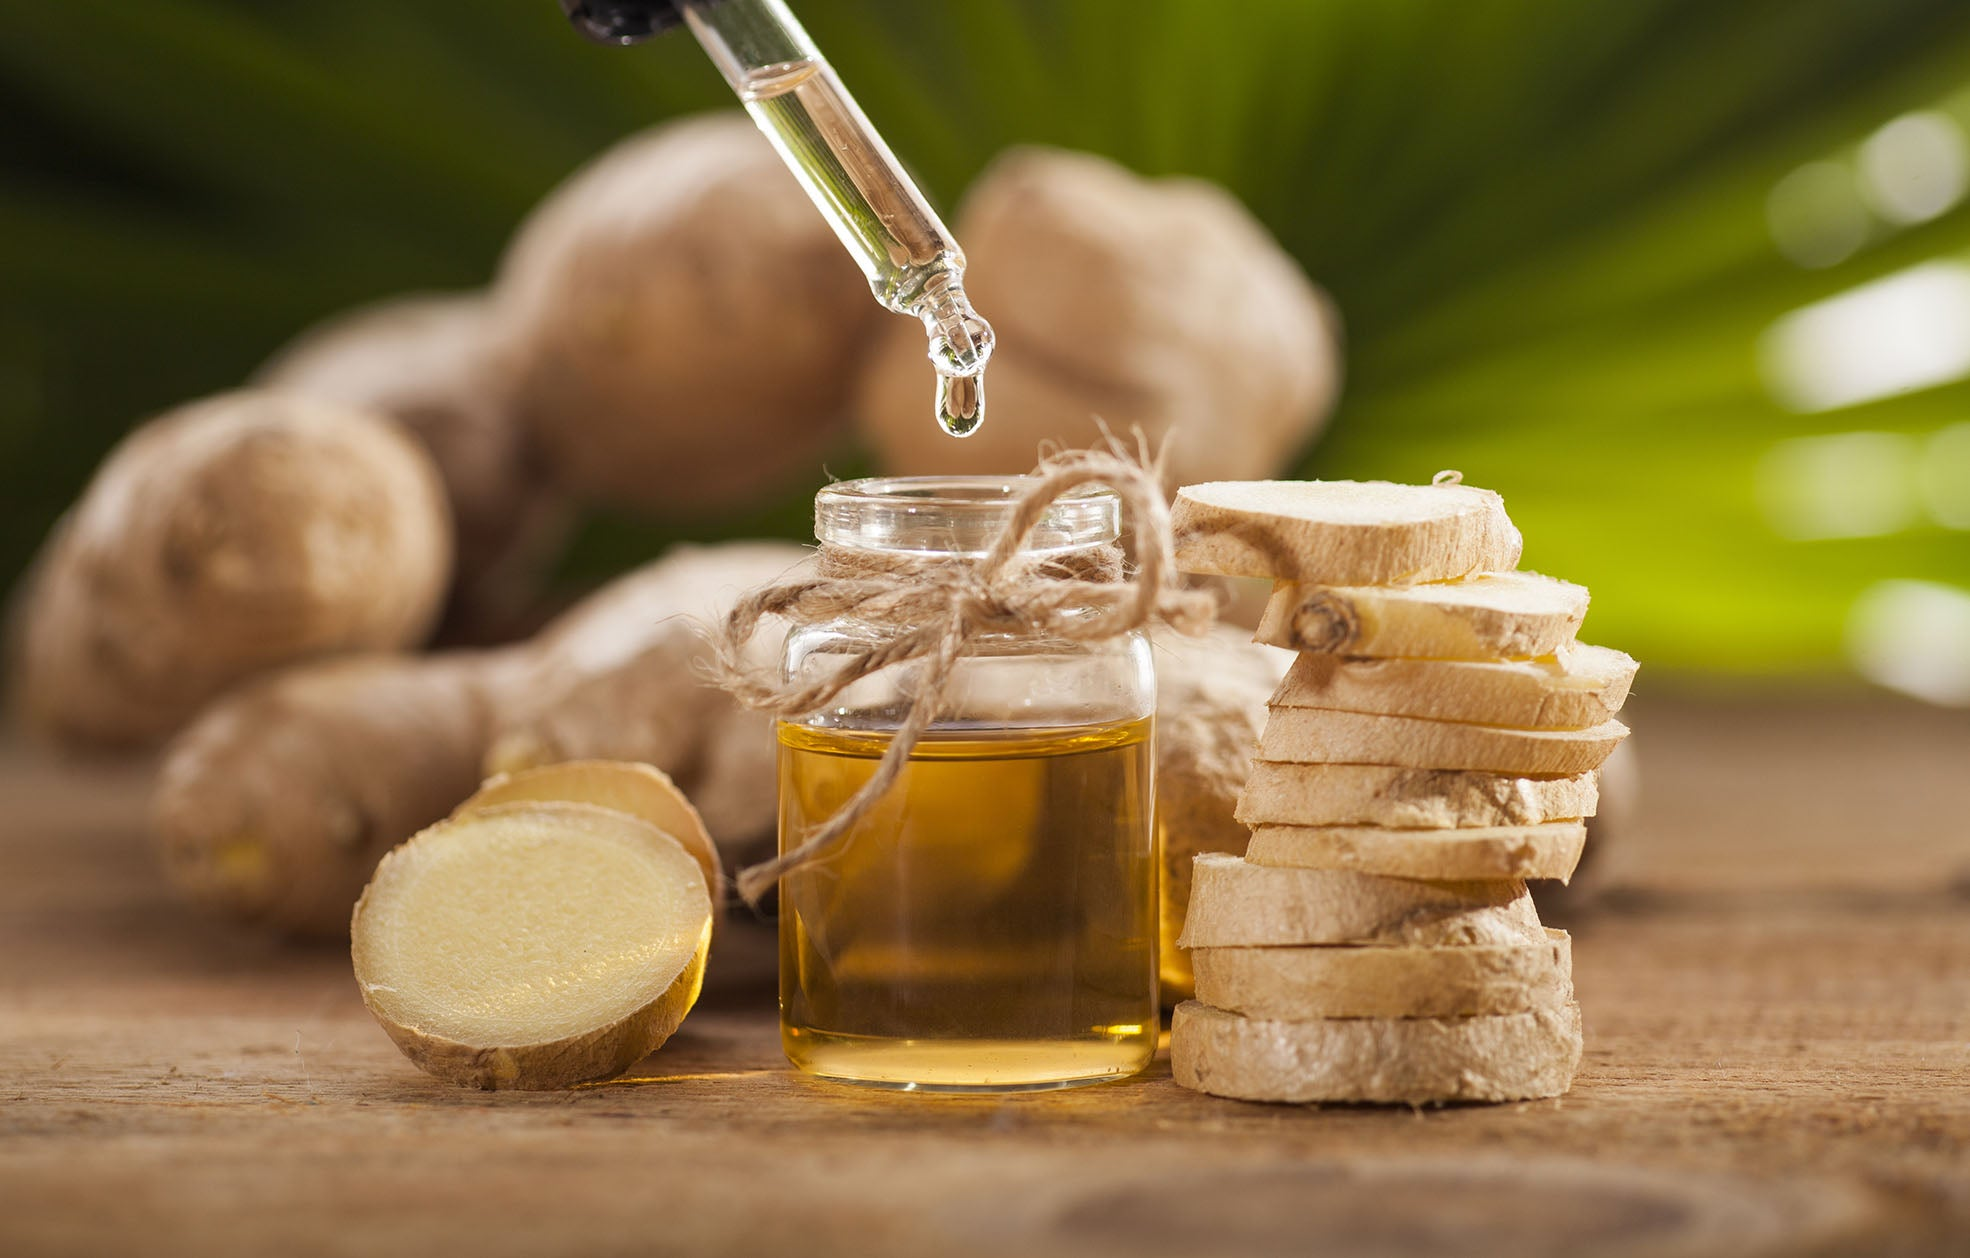 how to enjoy ginger essential oil benefits